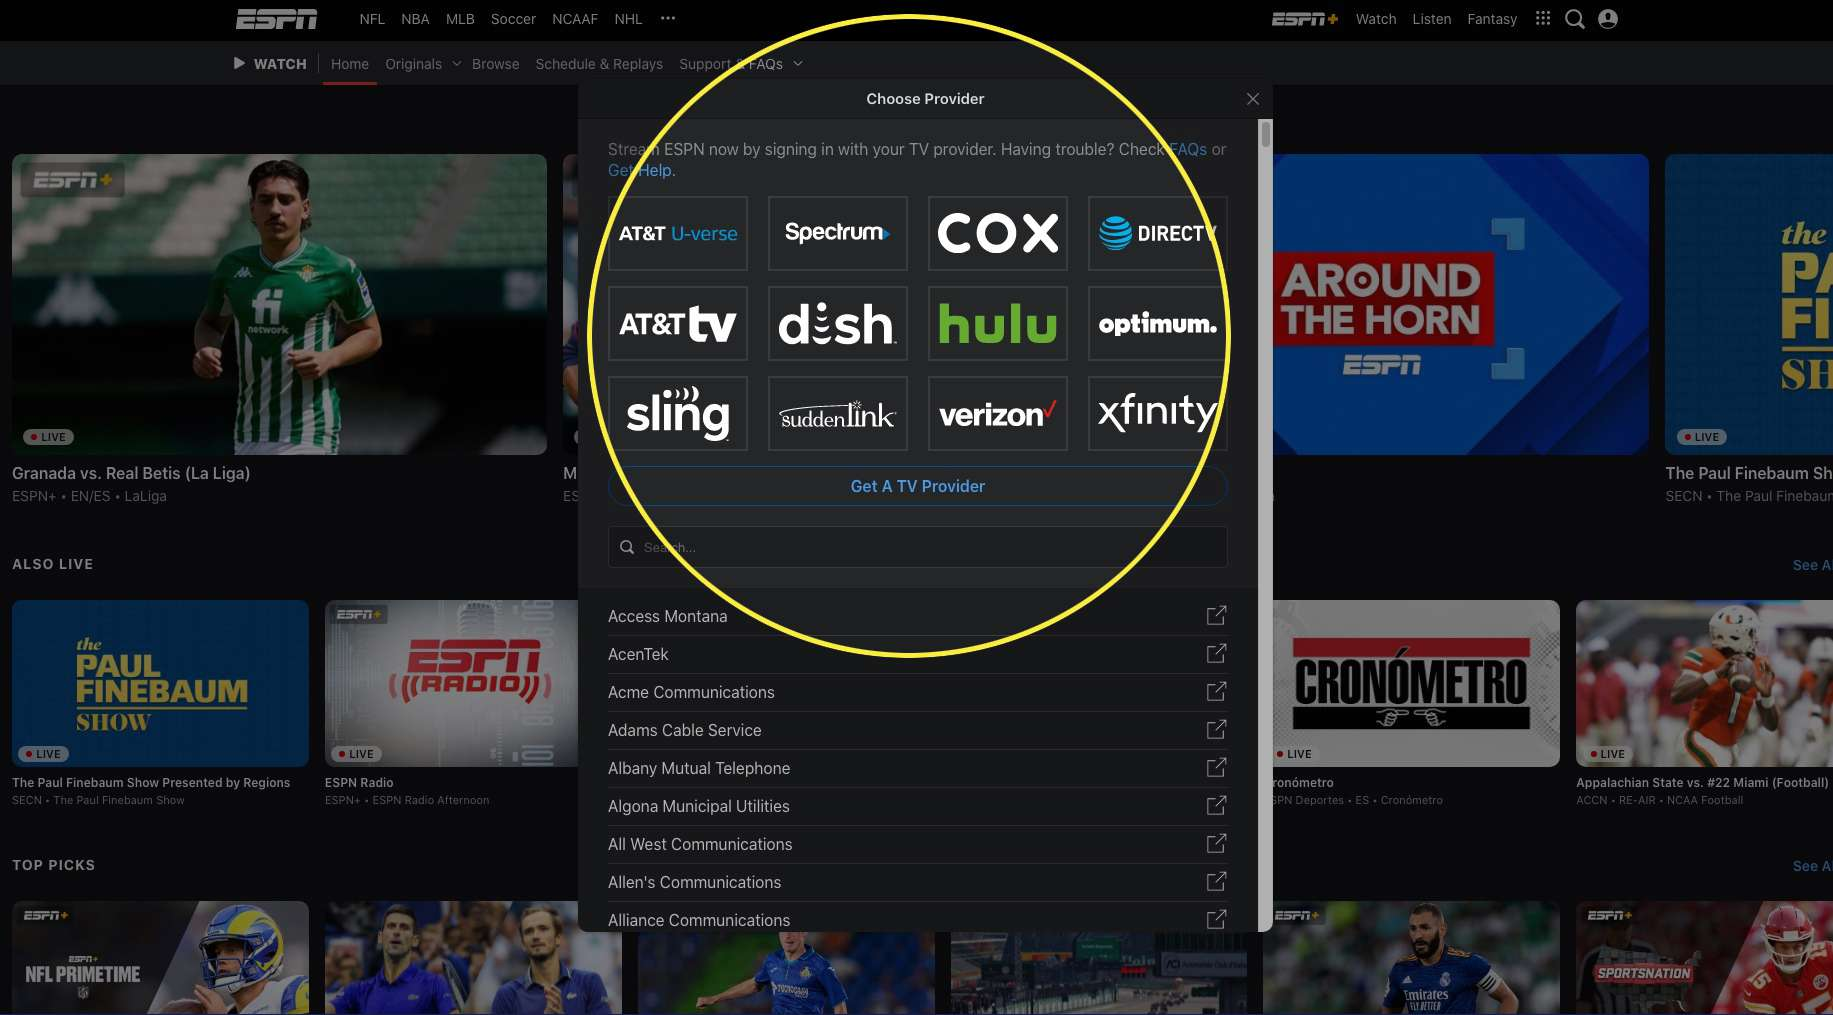 Watch ESPN website with TV providers highlighted